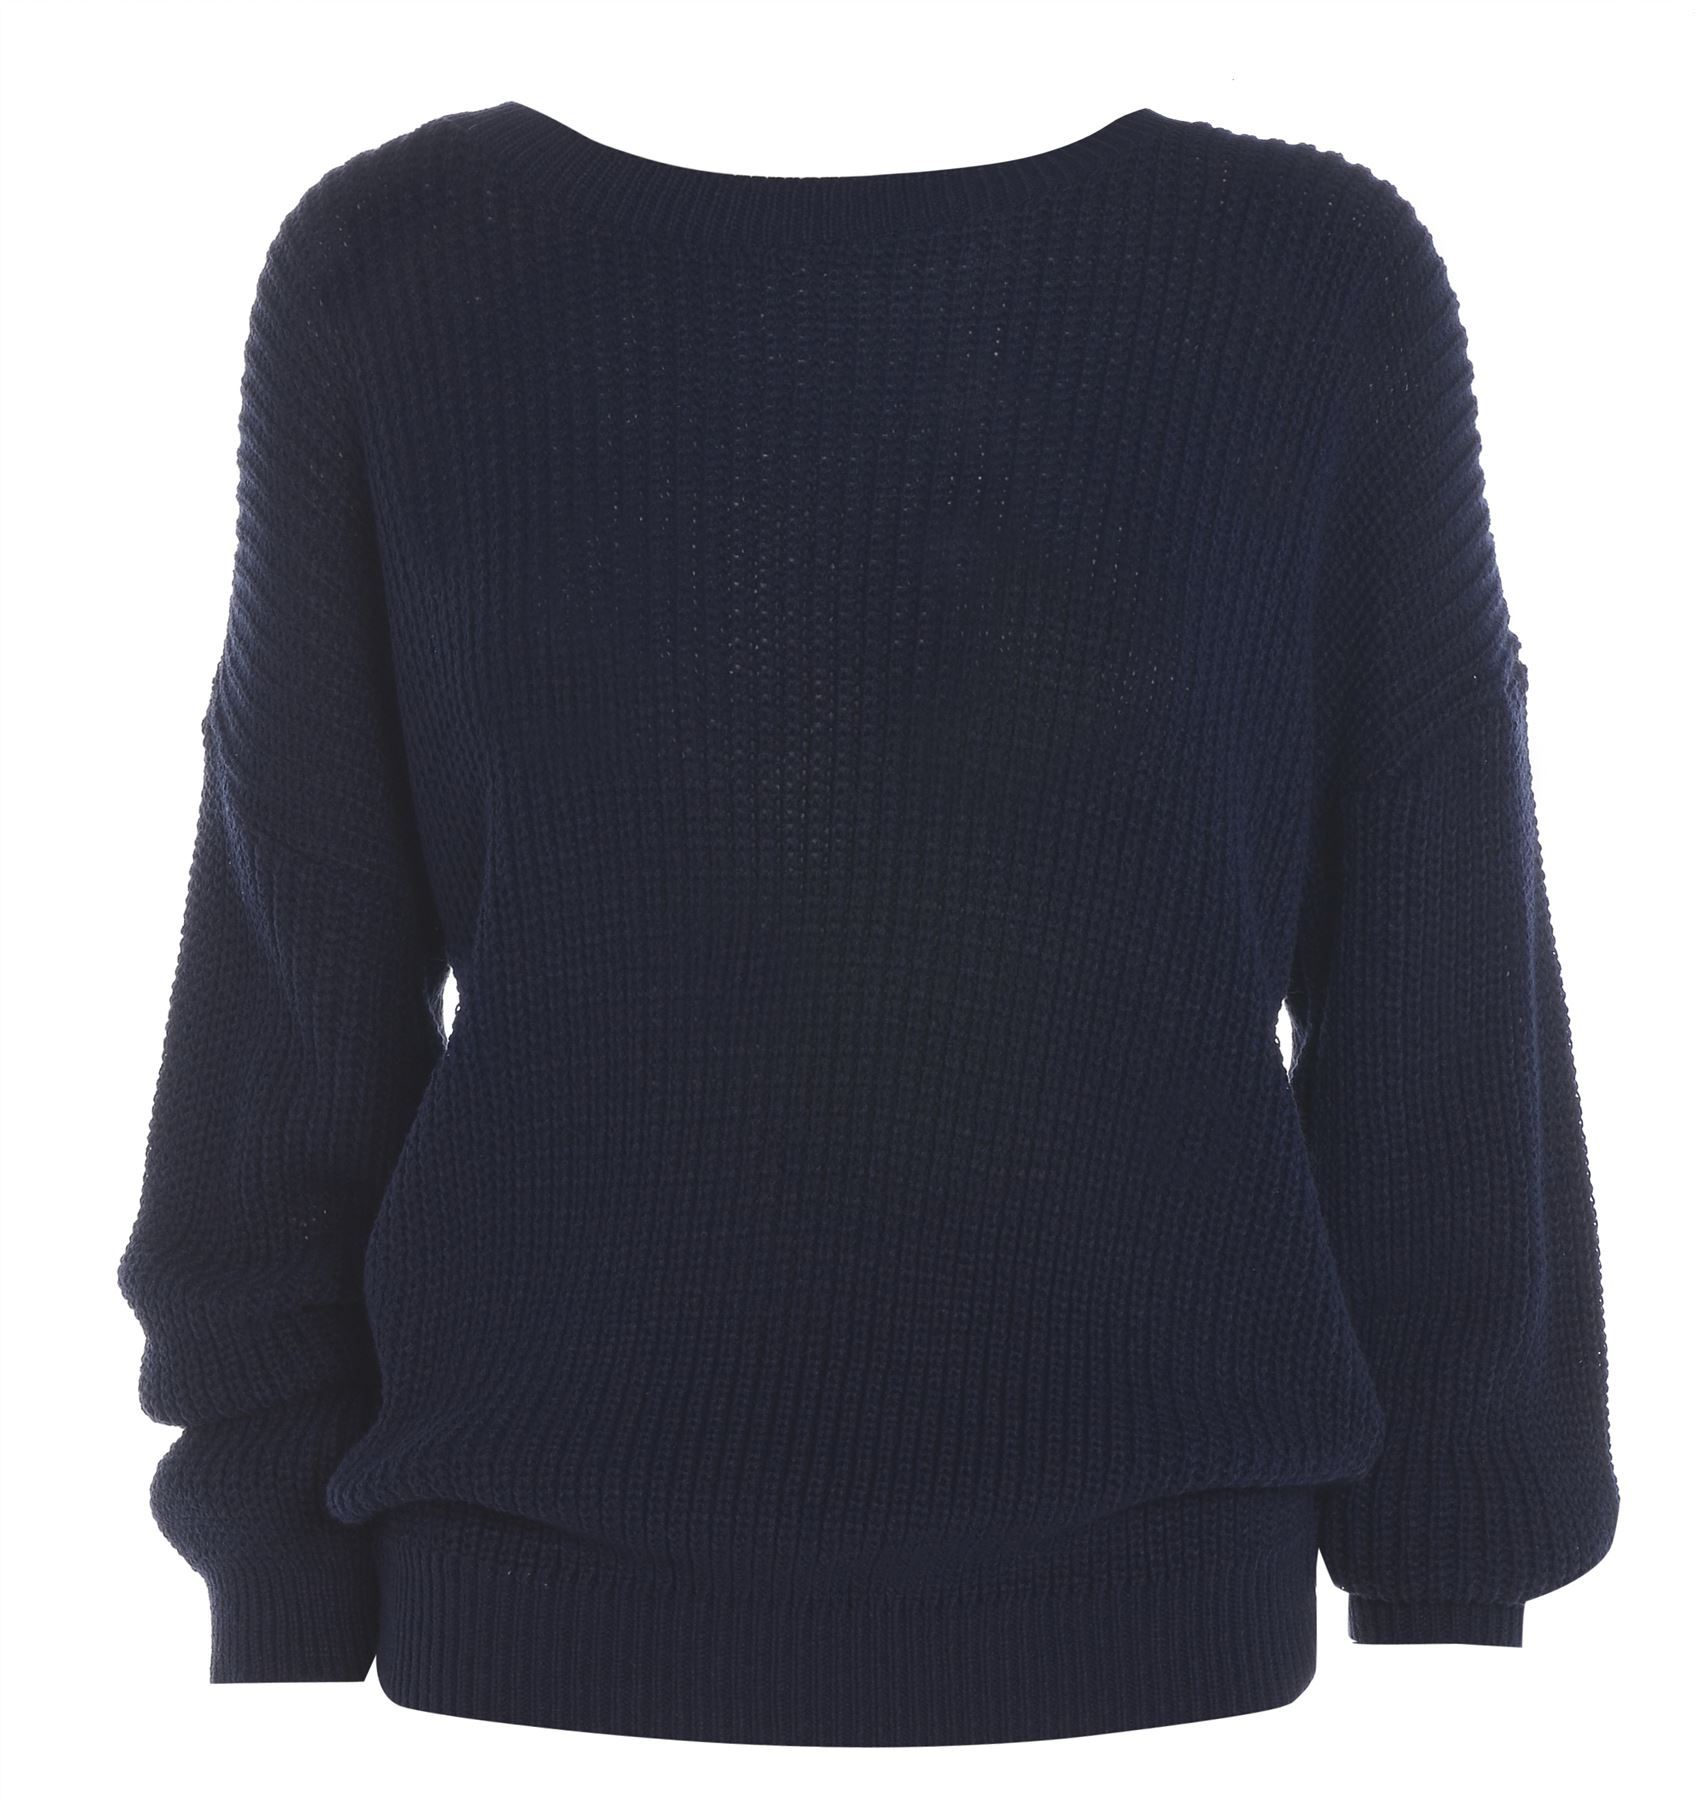 New Ladies Womens Oversized Chunky Sweater Baggy Knitted Jumper Top eBay